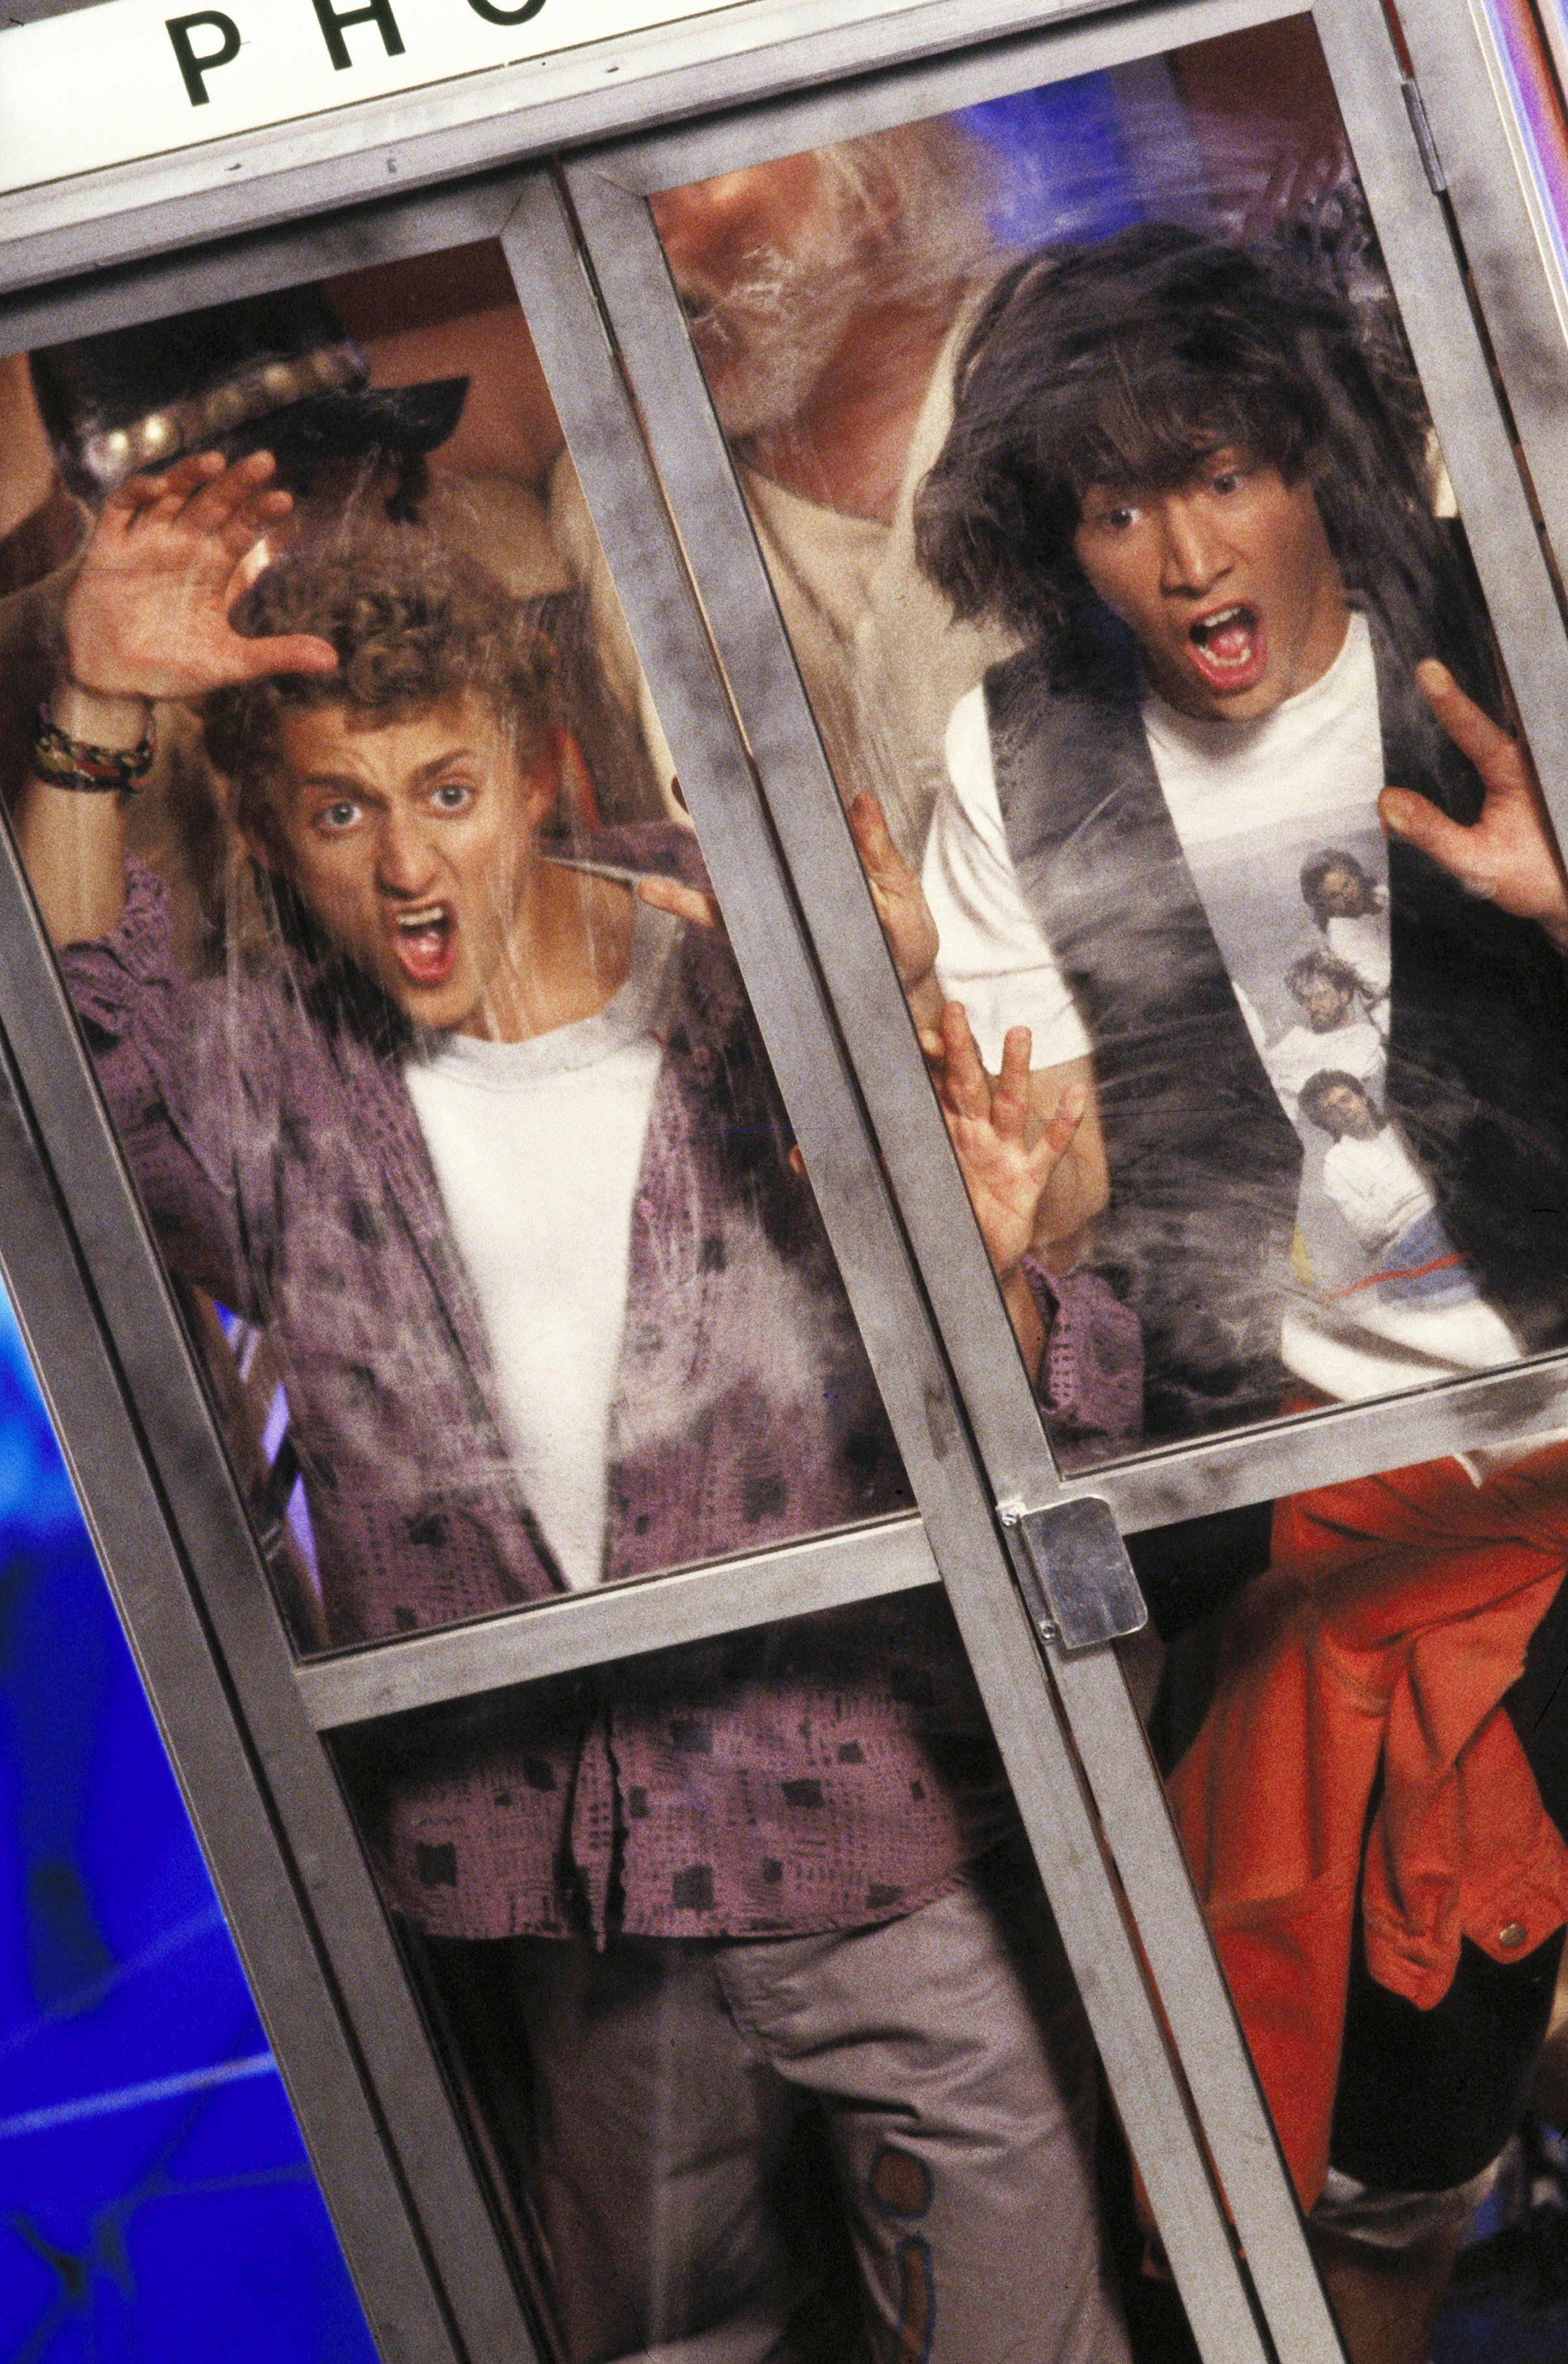 'Bill And Ted 3' Is Officially Happening, This Is Not A